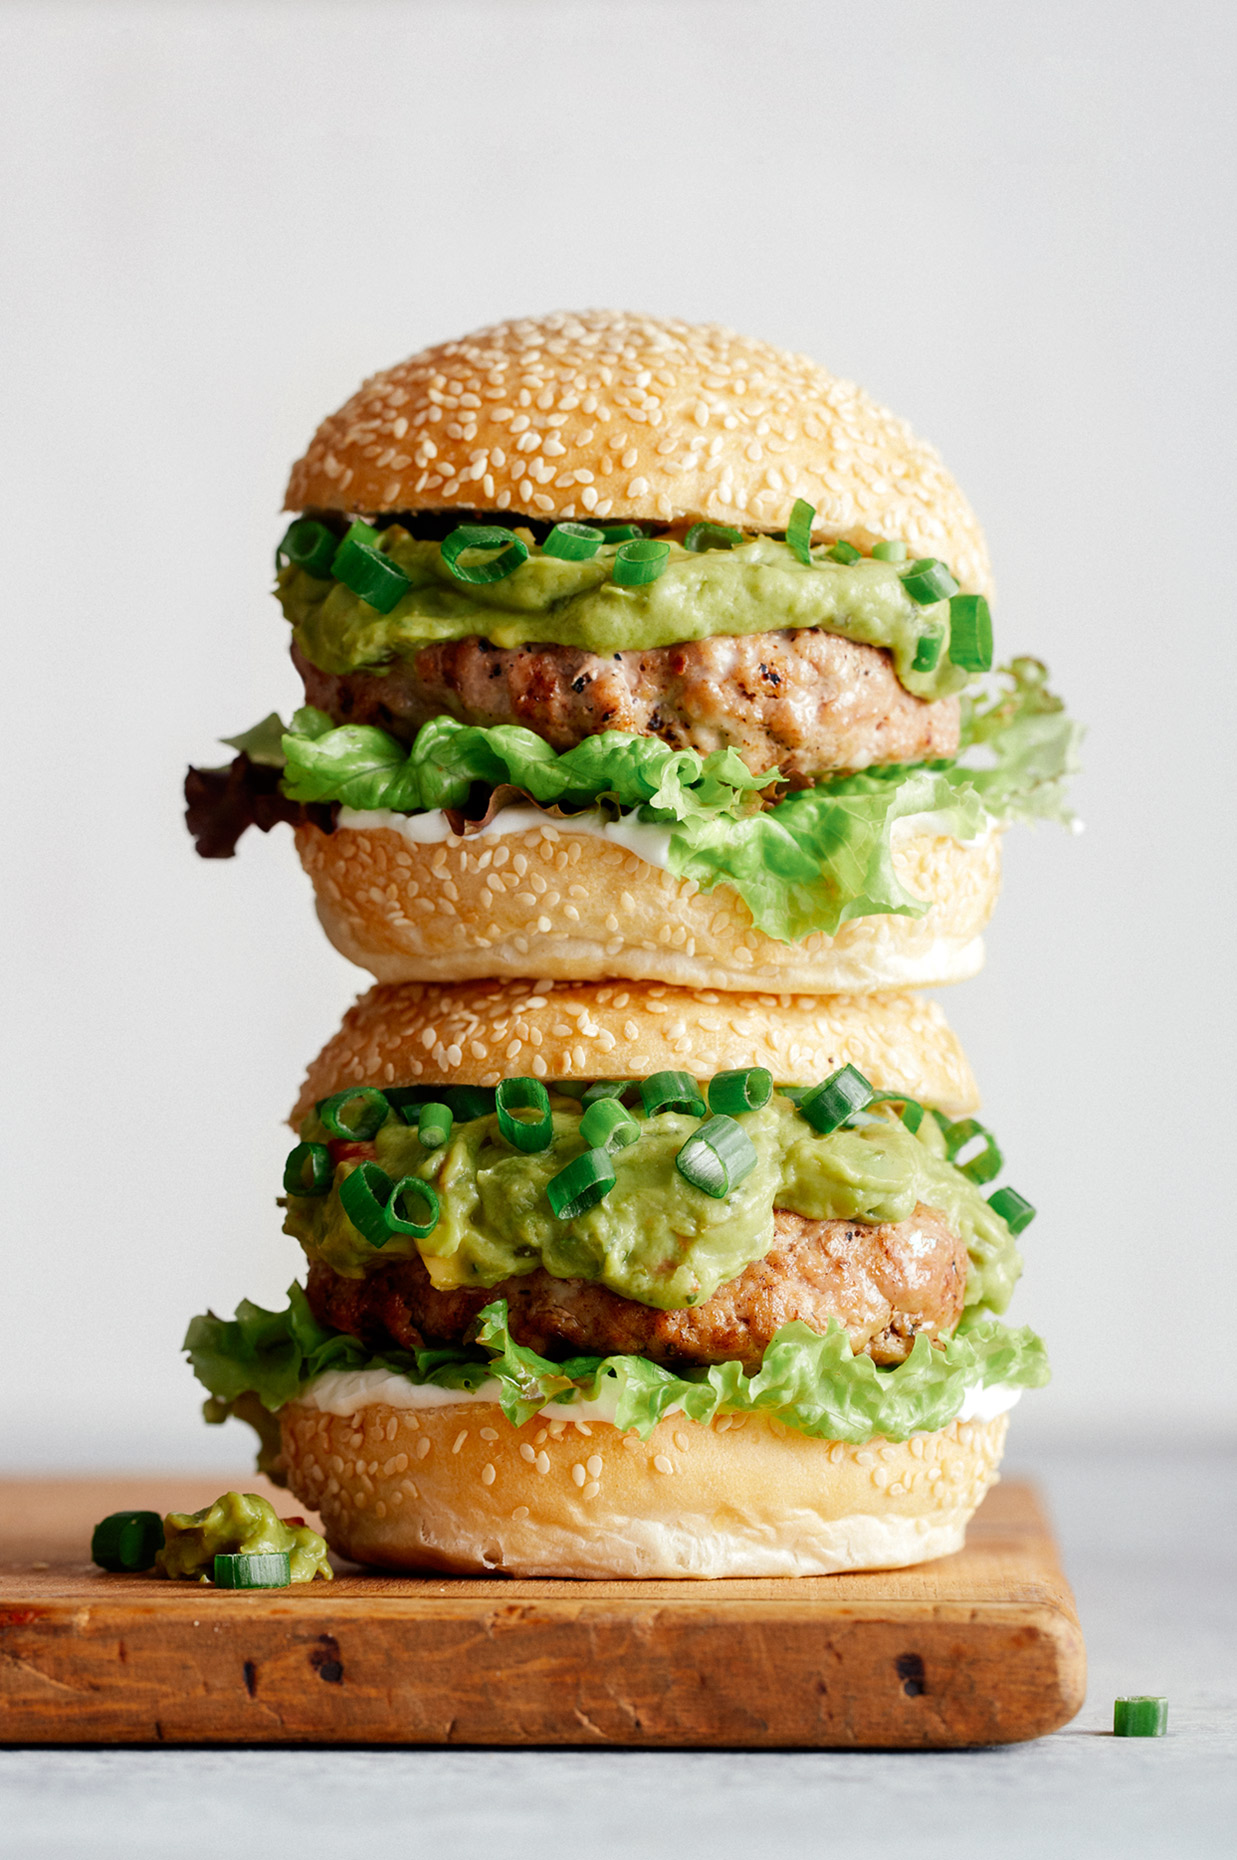 Turkey burger - LA Food Photographer